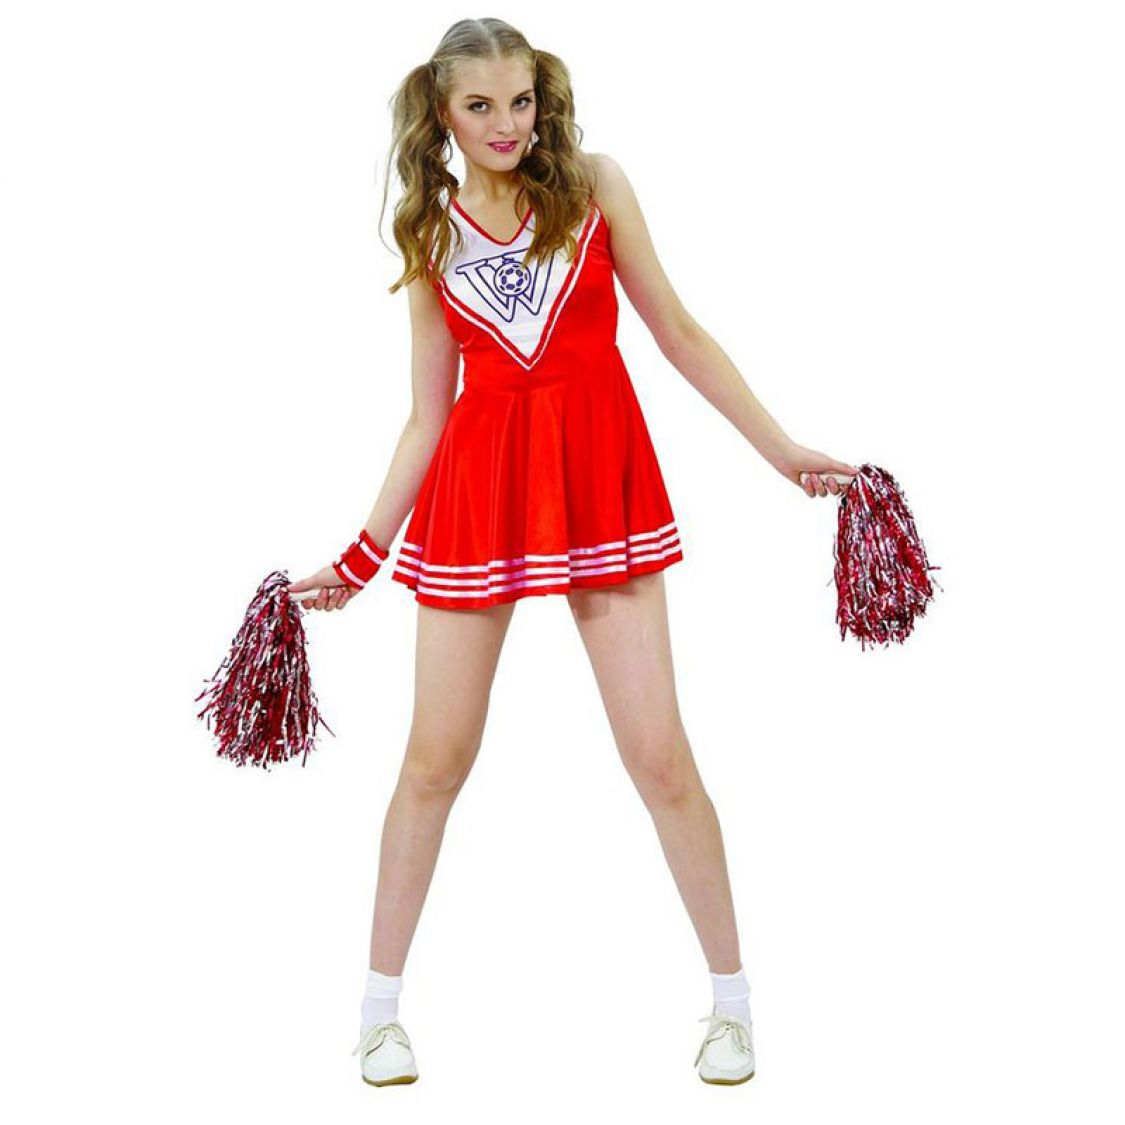 D guisement pom pom girl rouge femme - Deguisement halloween ado ...